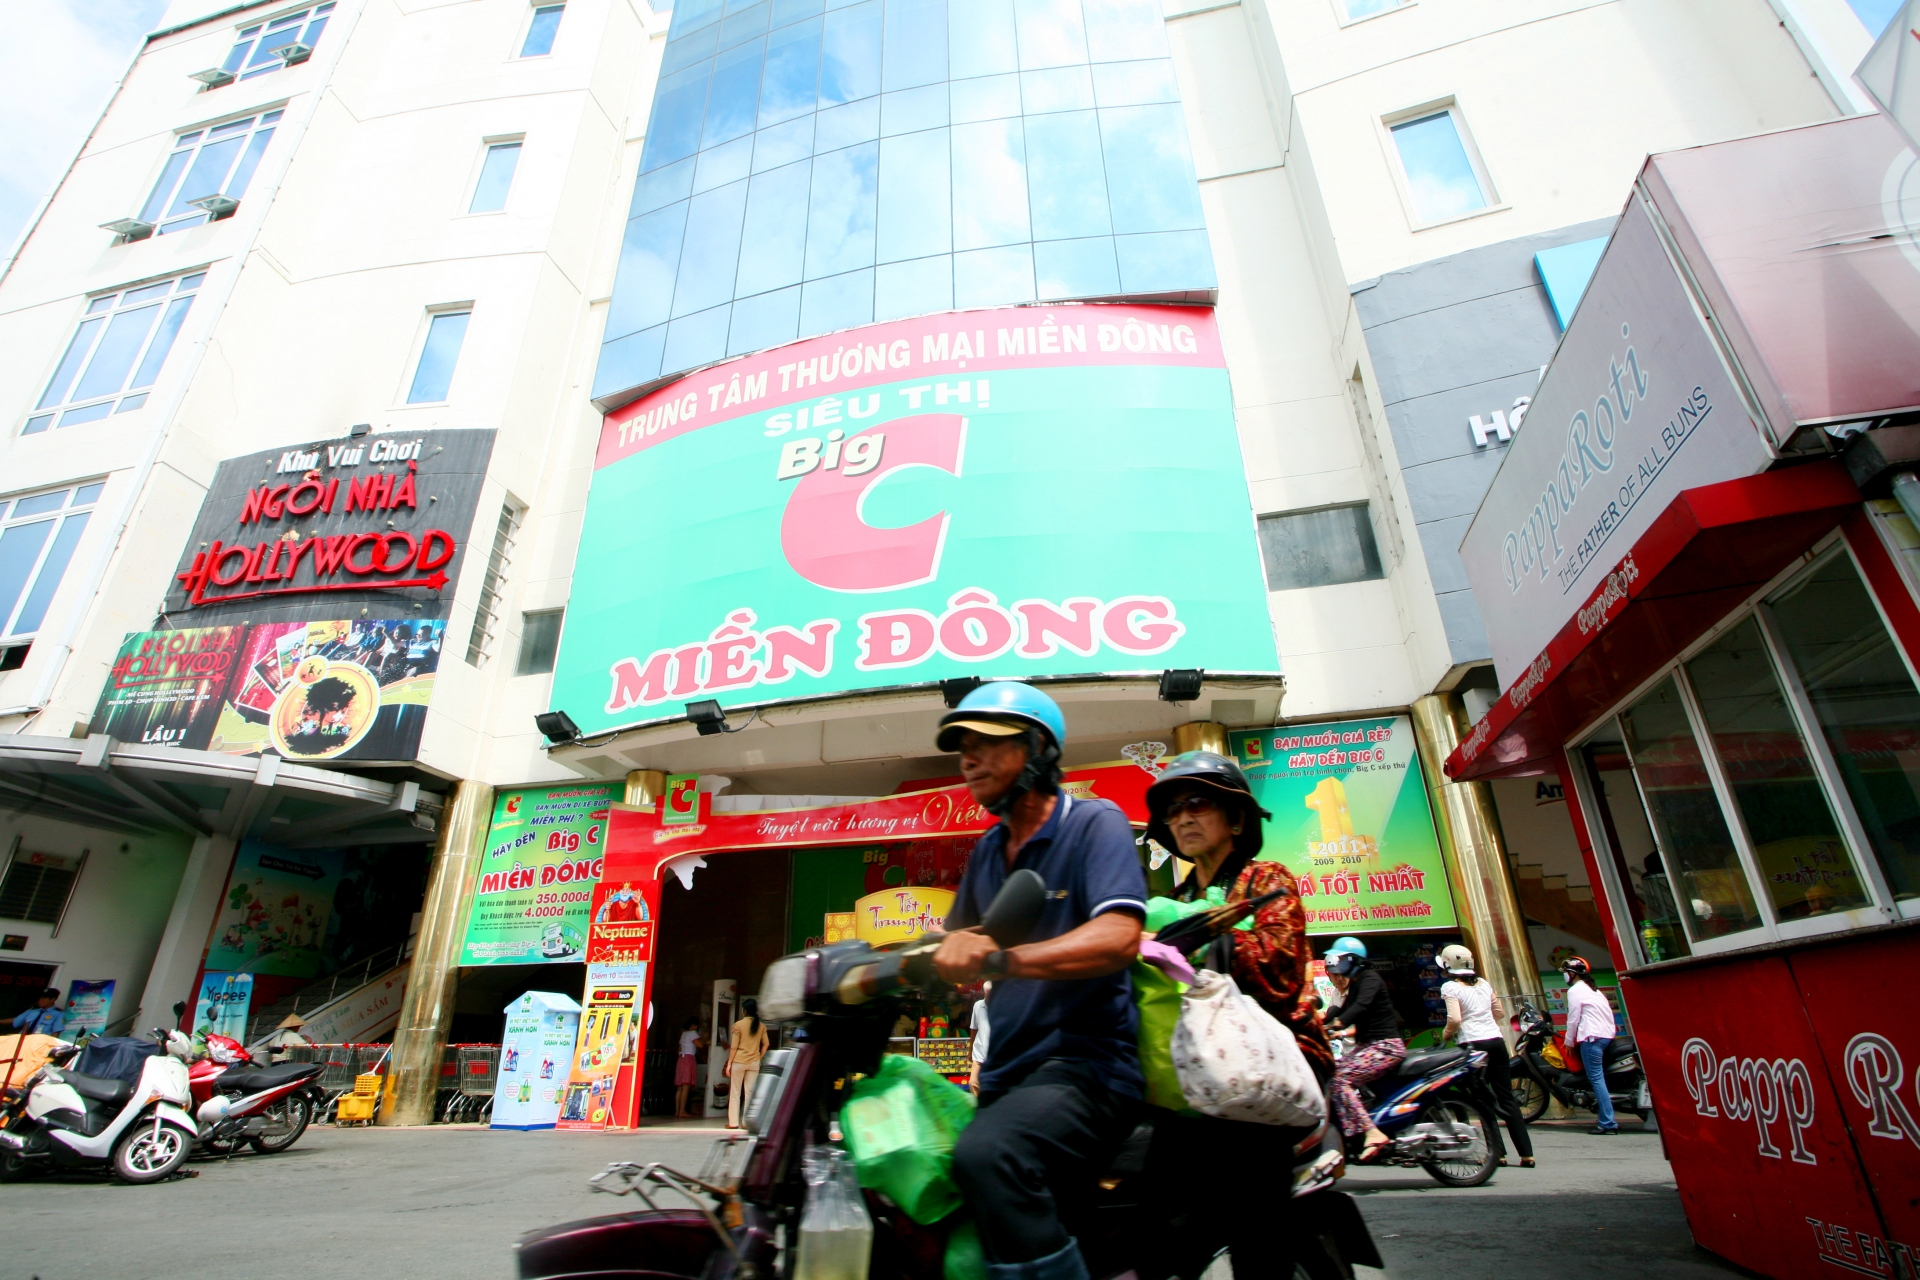 big c renamed to go and tops market in vietnam